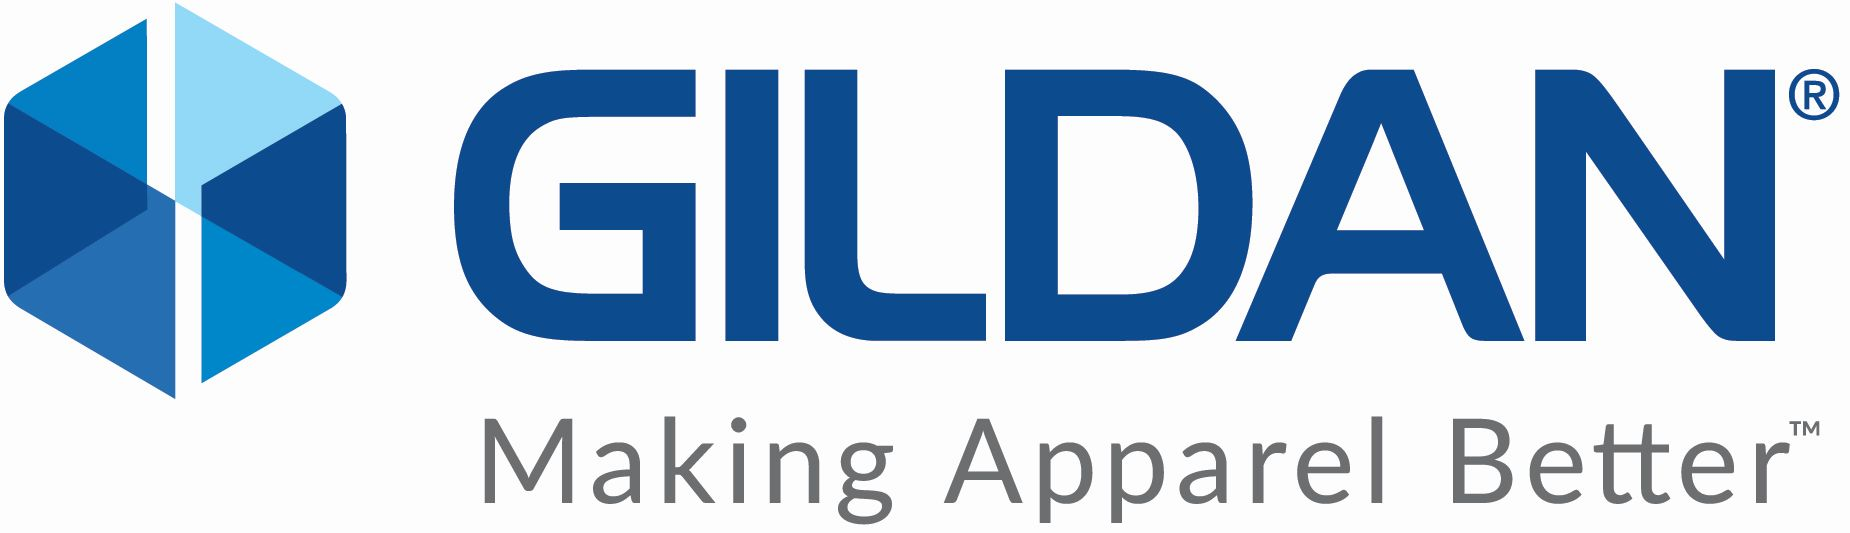 Gildan Included in Leadership Band on CDP's 2020 Climate Change Report